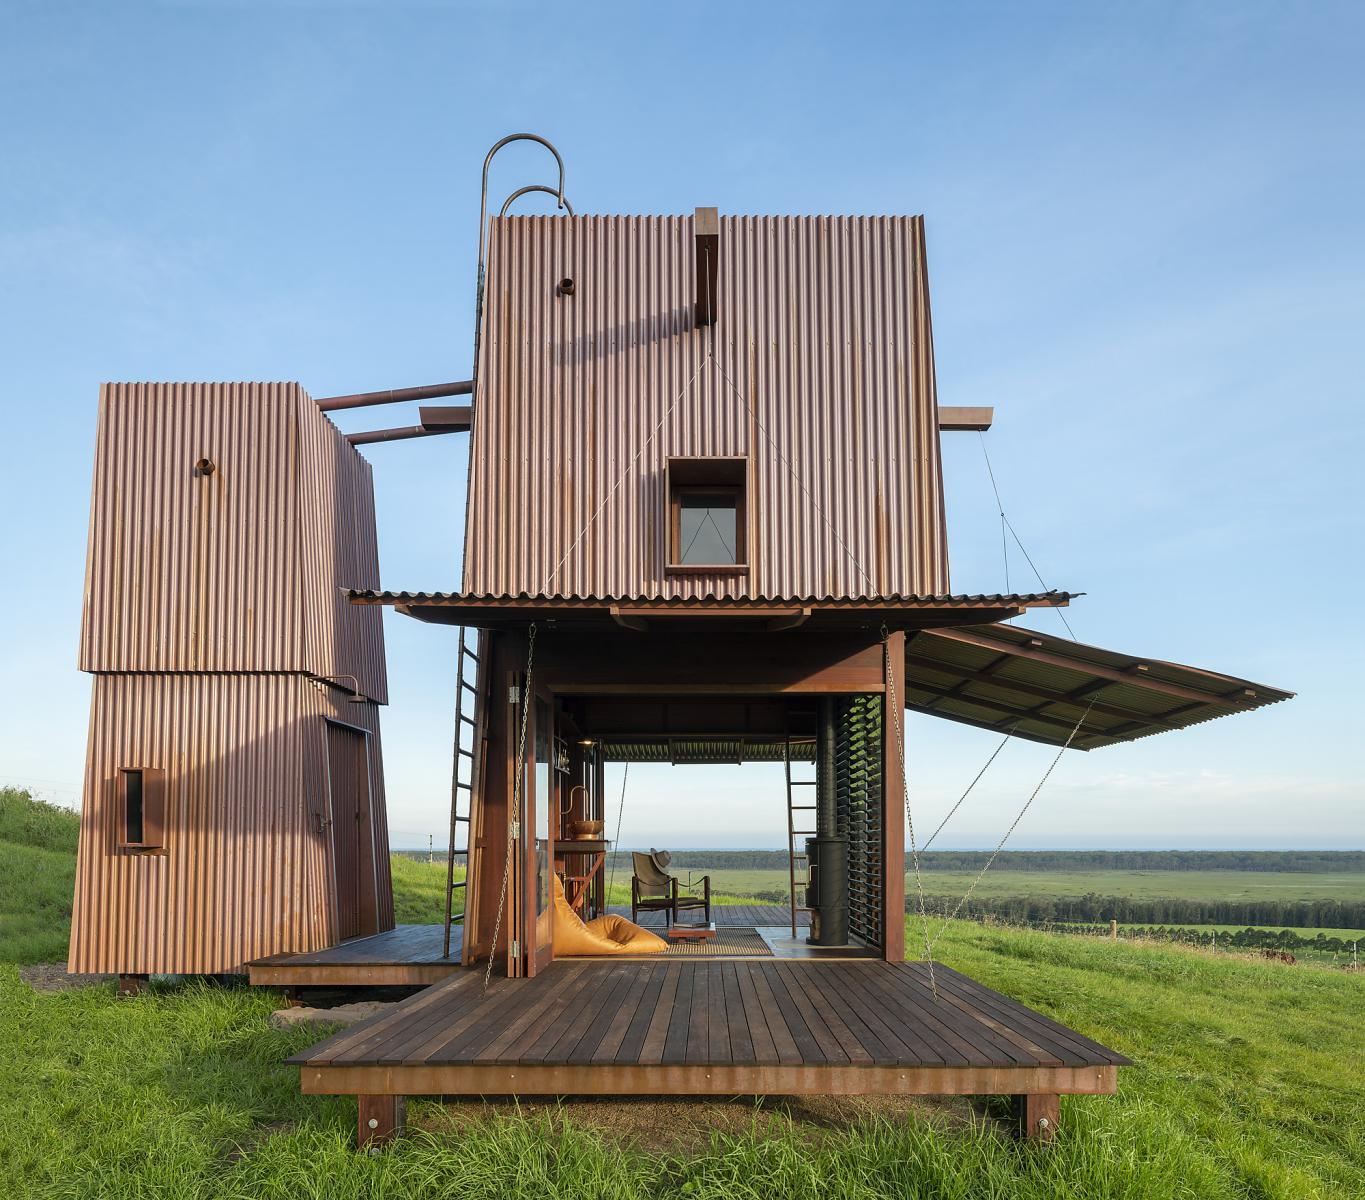 Permanent Camping Two is a tiny home which allows its occupants to enjoy camping but with some creature comforts